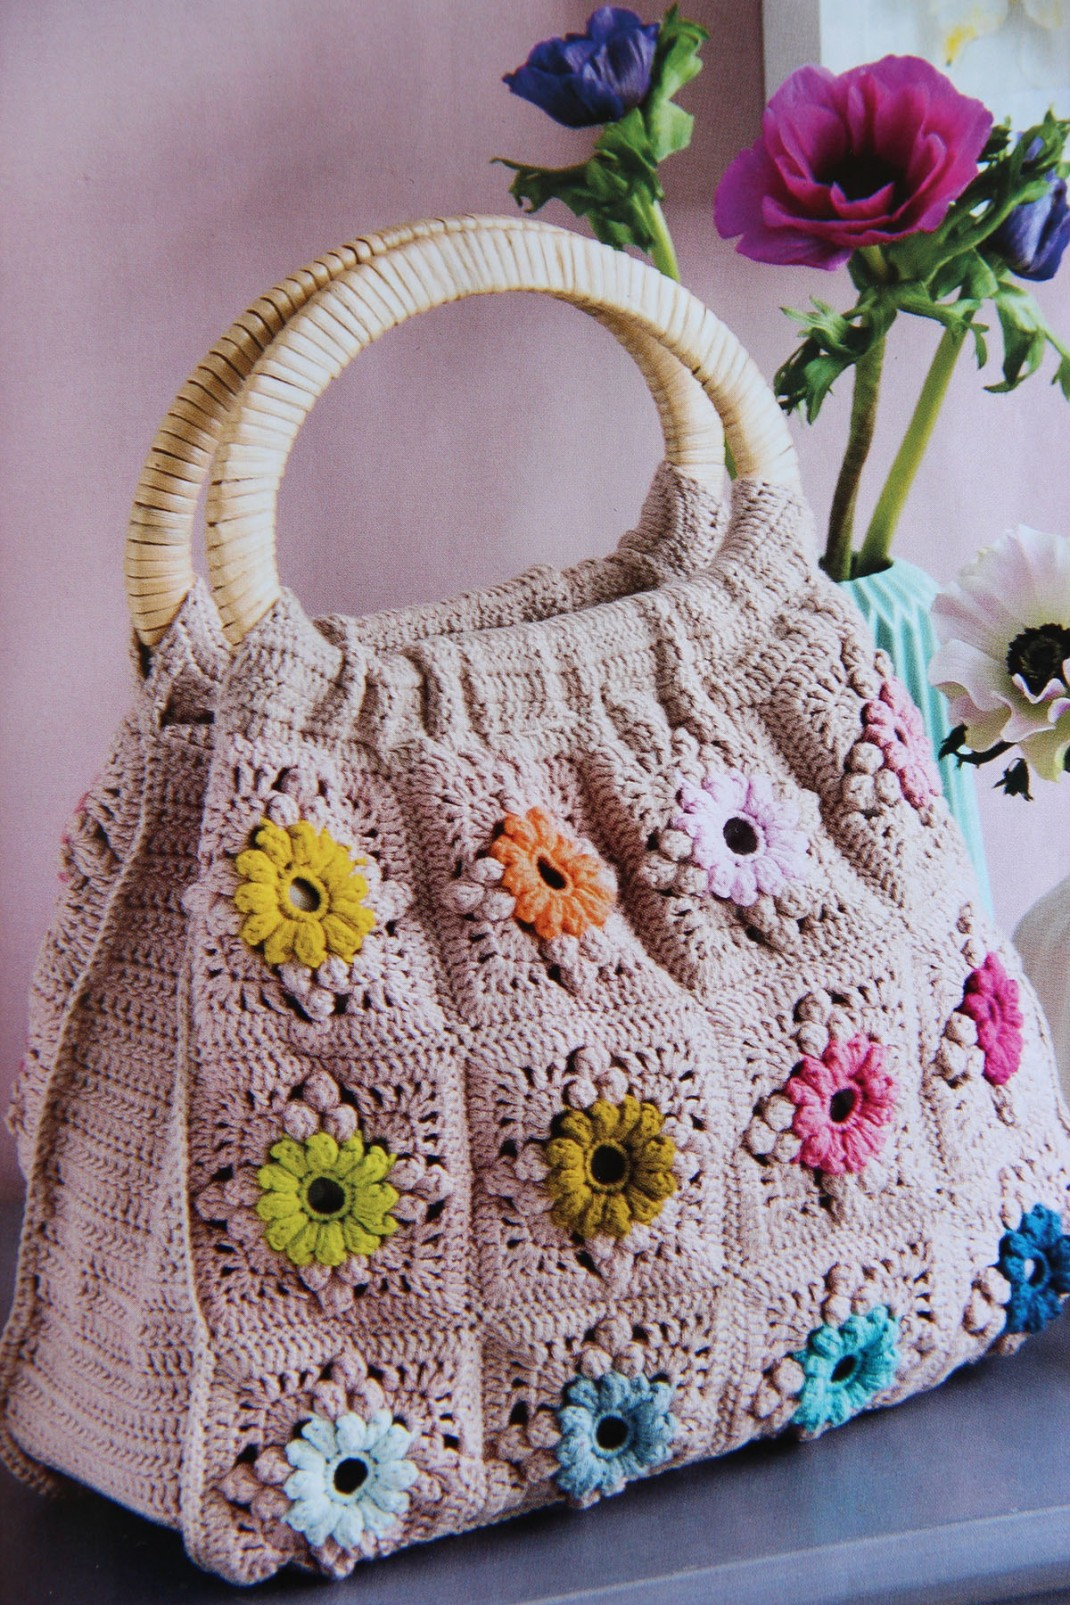 sac en grannies floraux Laurence Mabit Passion Tricot PurPle Laines